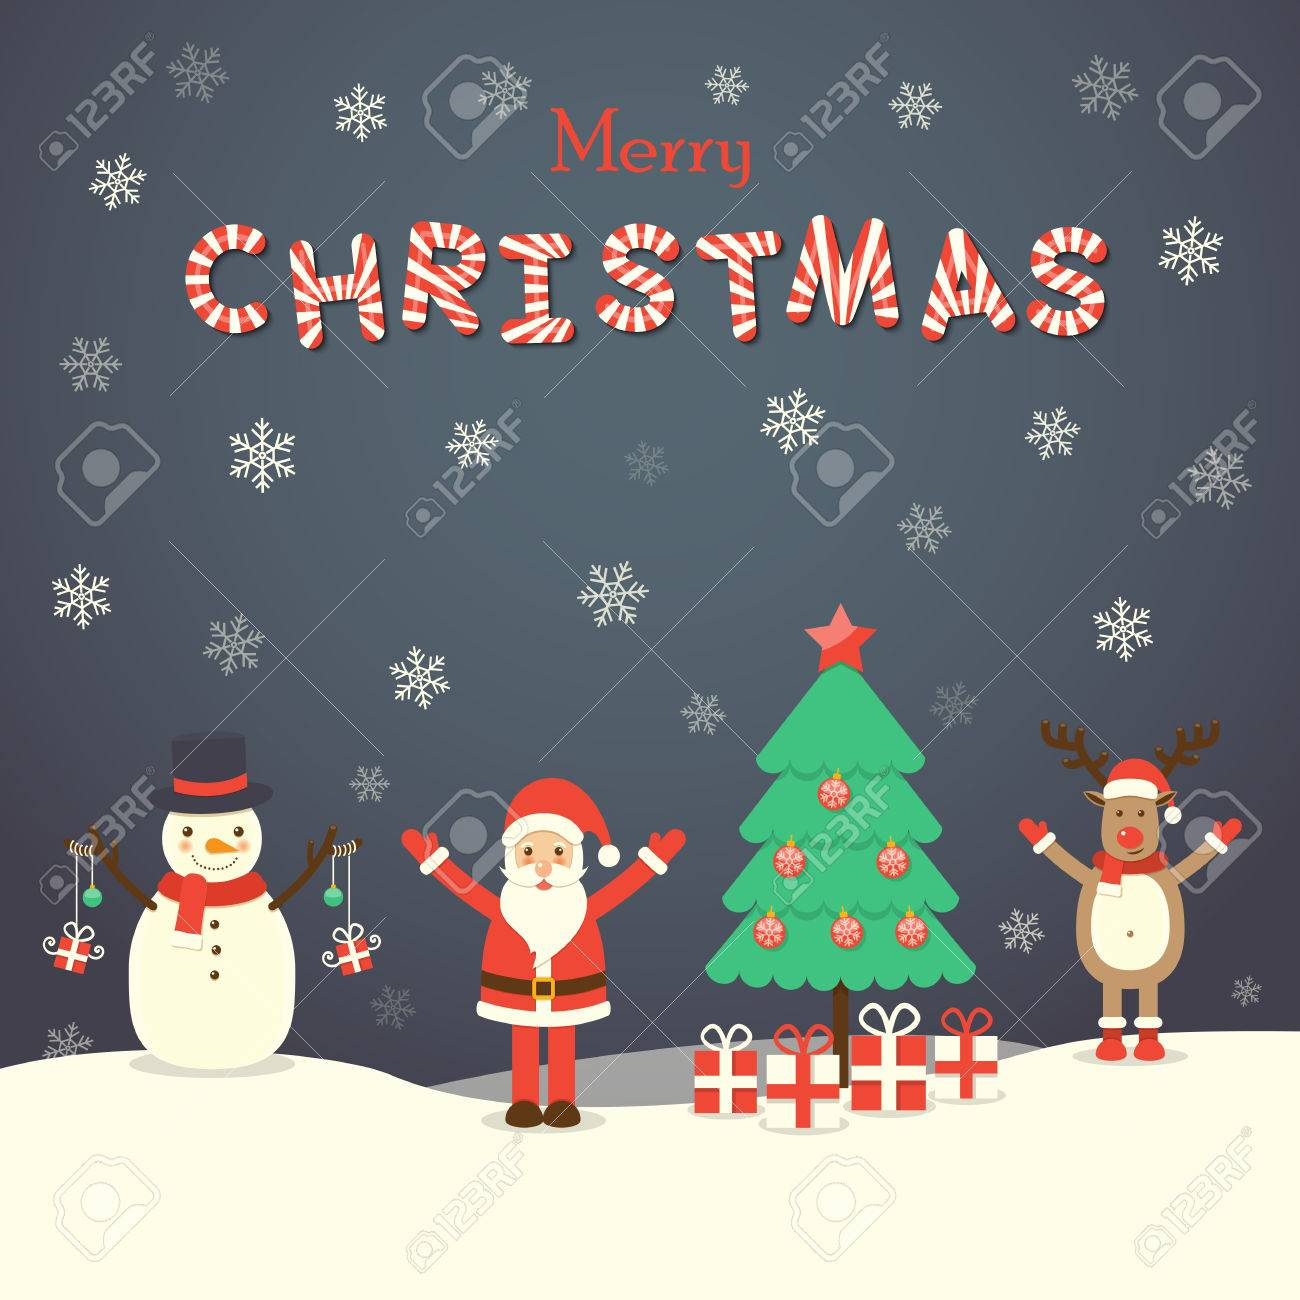 Santa Claus Snowman Reindeer And Christmas Tree On Snowing Royalty Free Cliparts Vectors And Stock Illustration Image 48781658